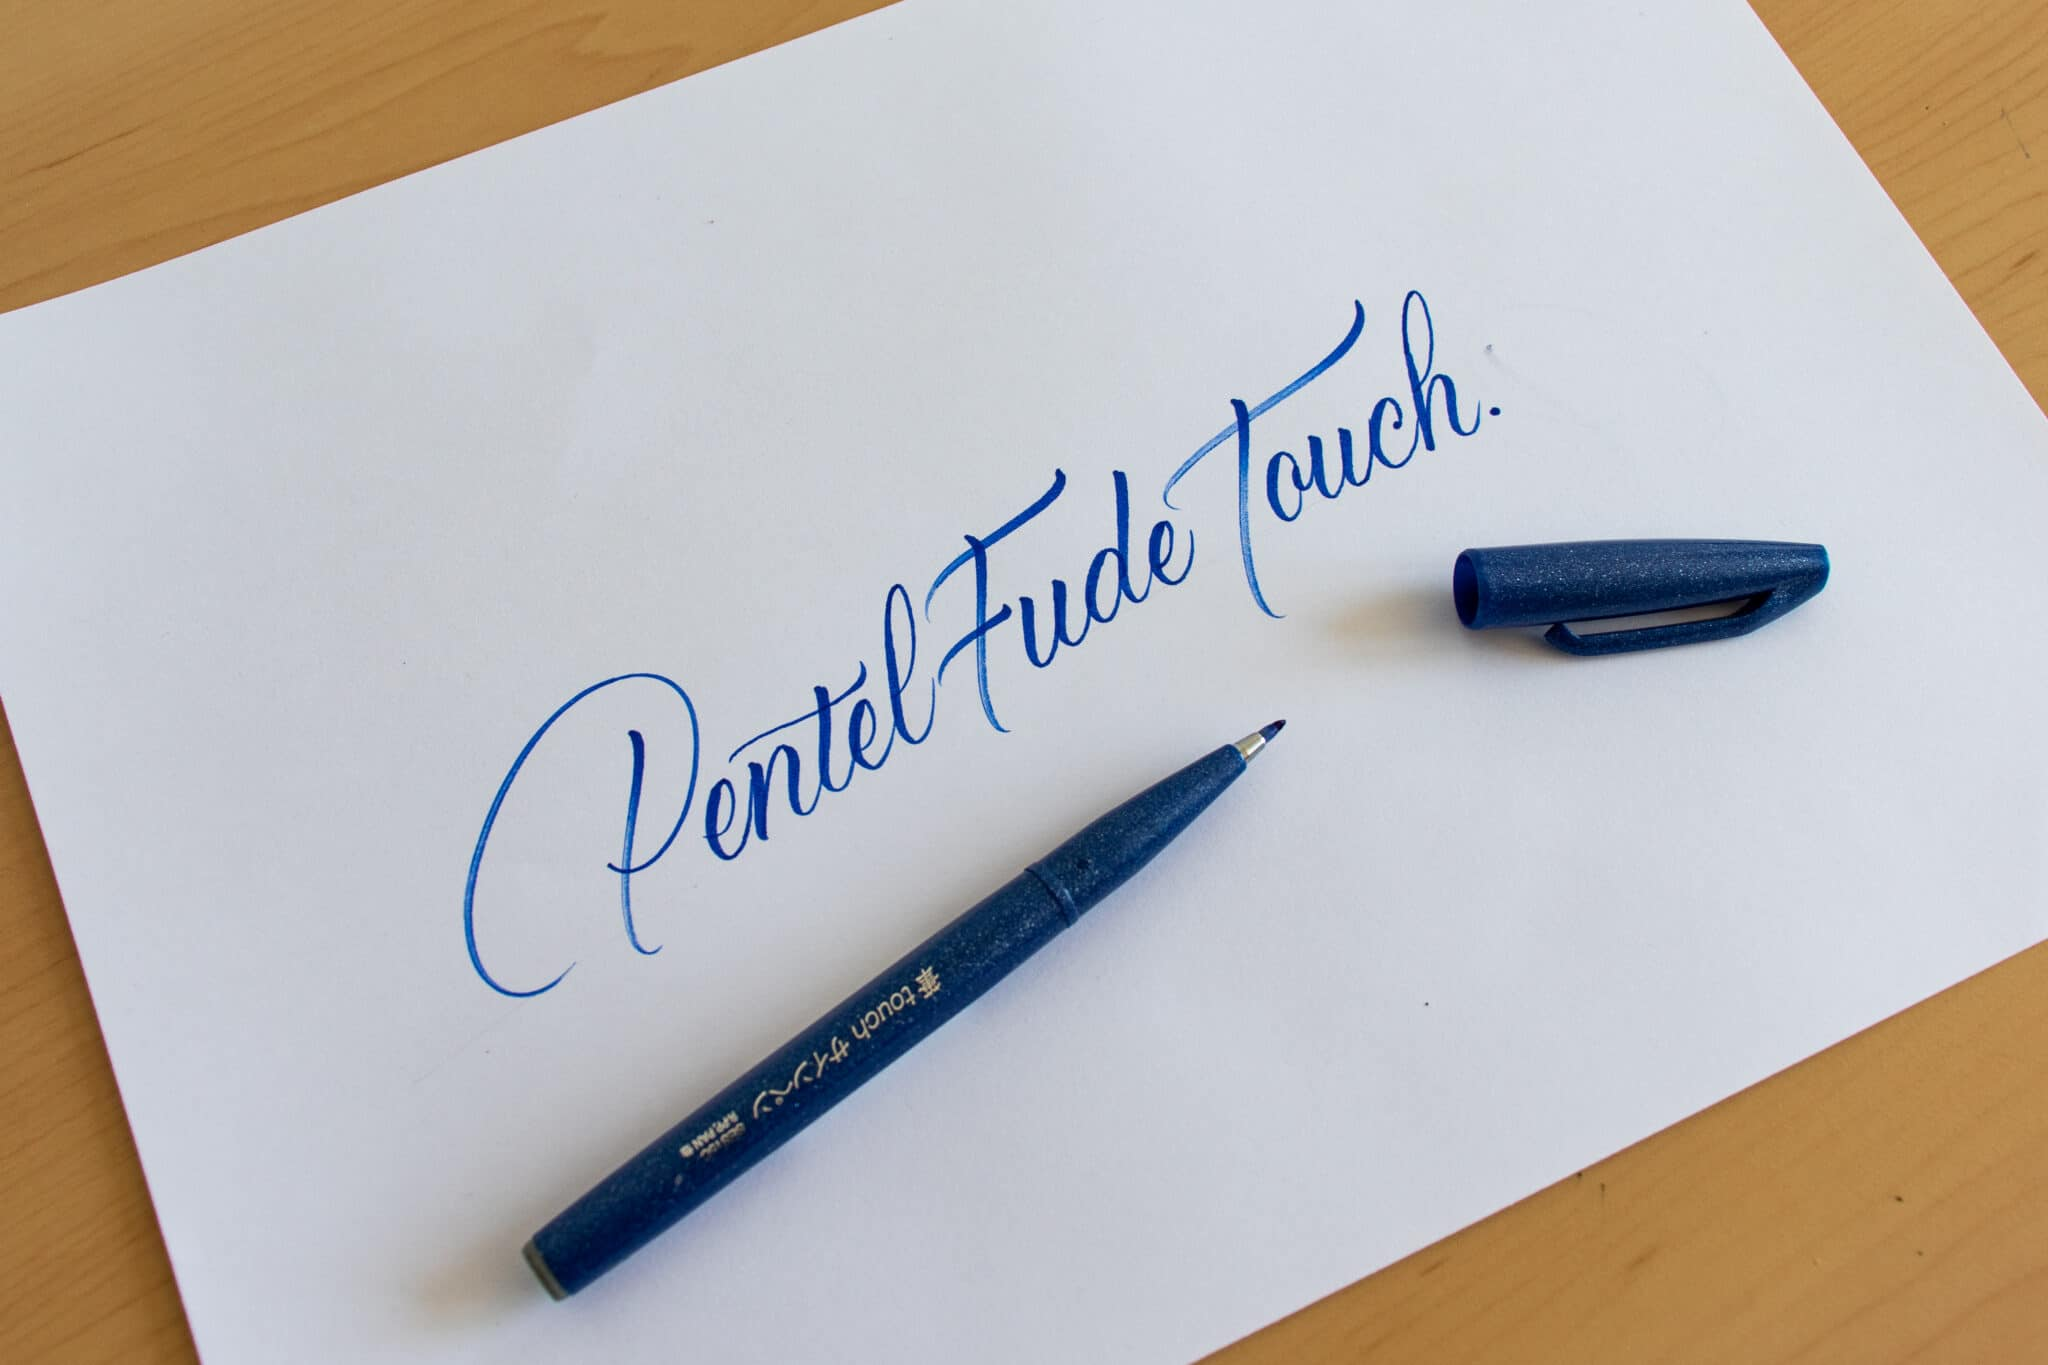 Pentel Fude Touch Sign Pen - sample calligraphy